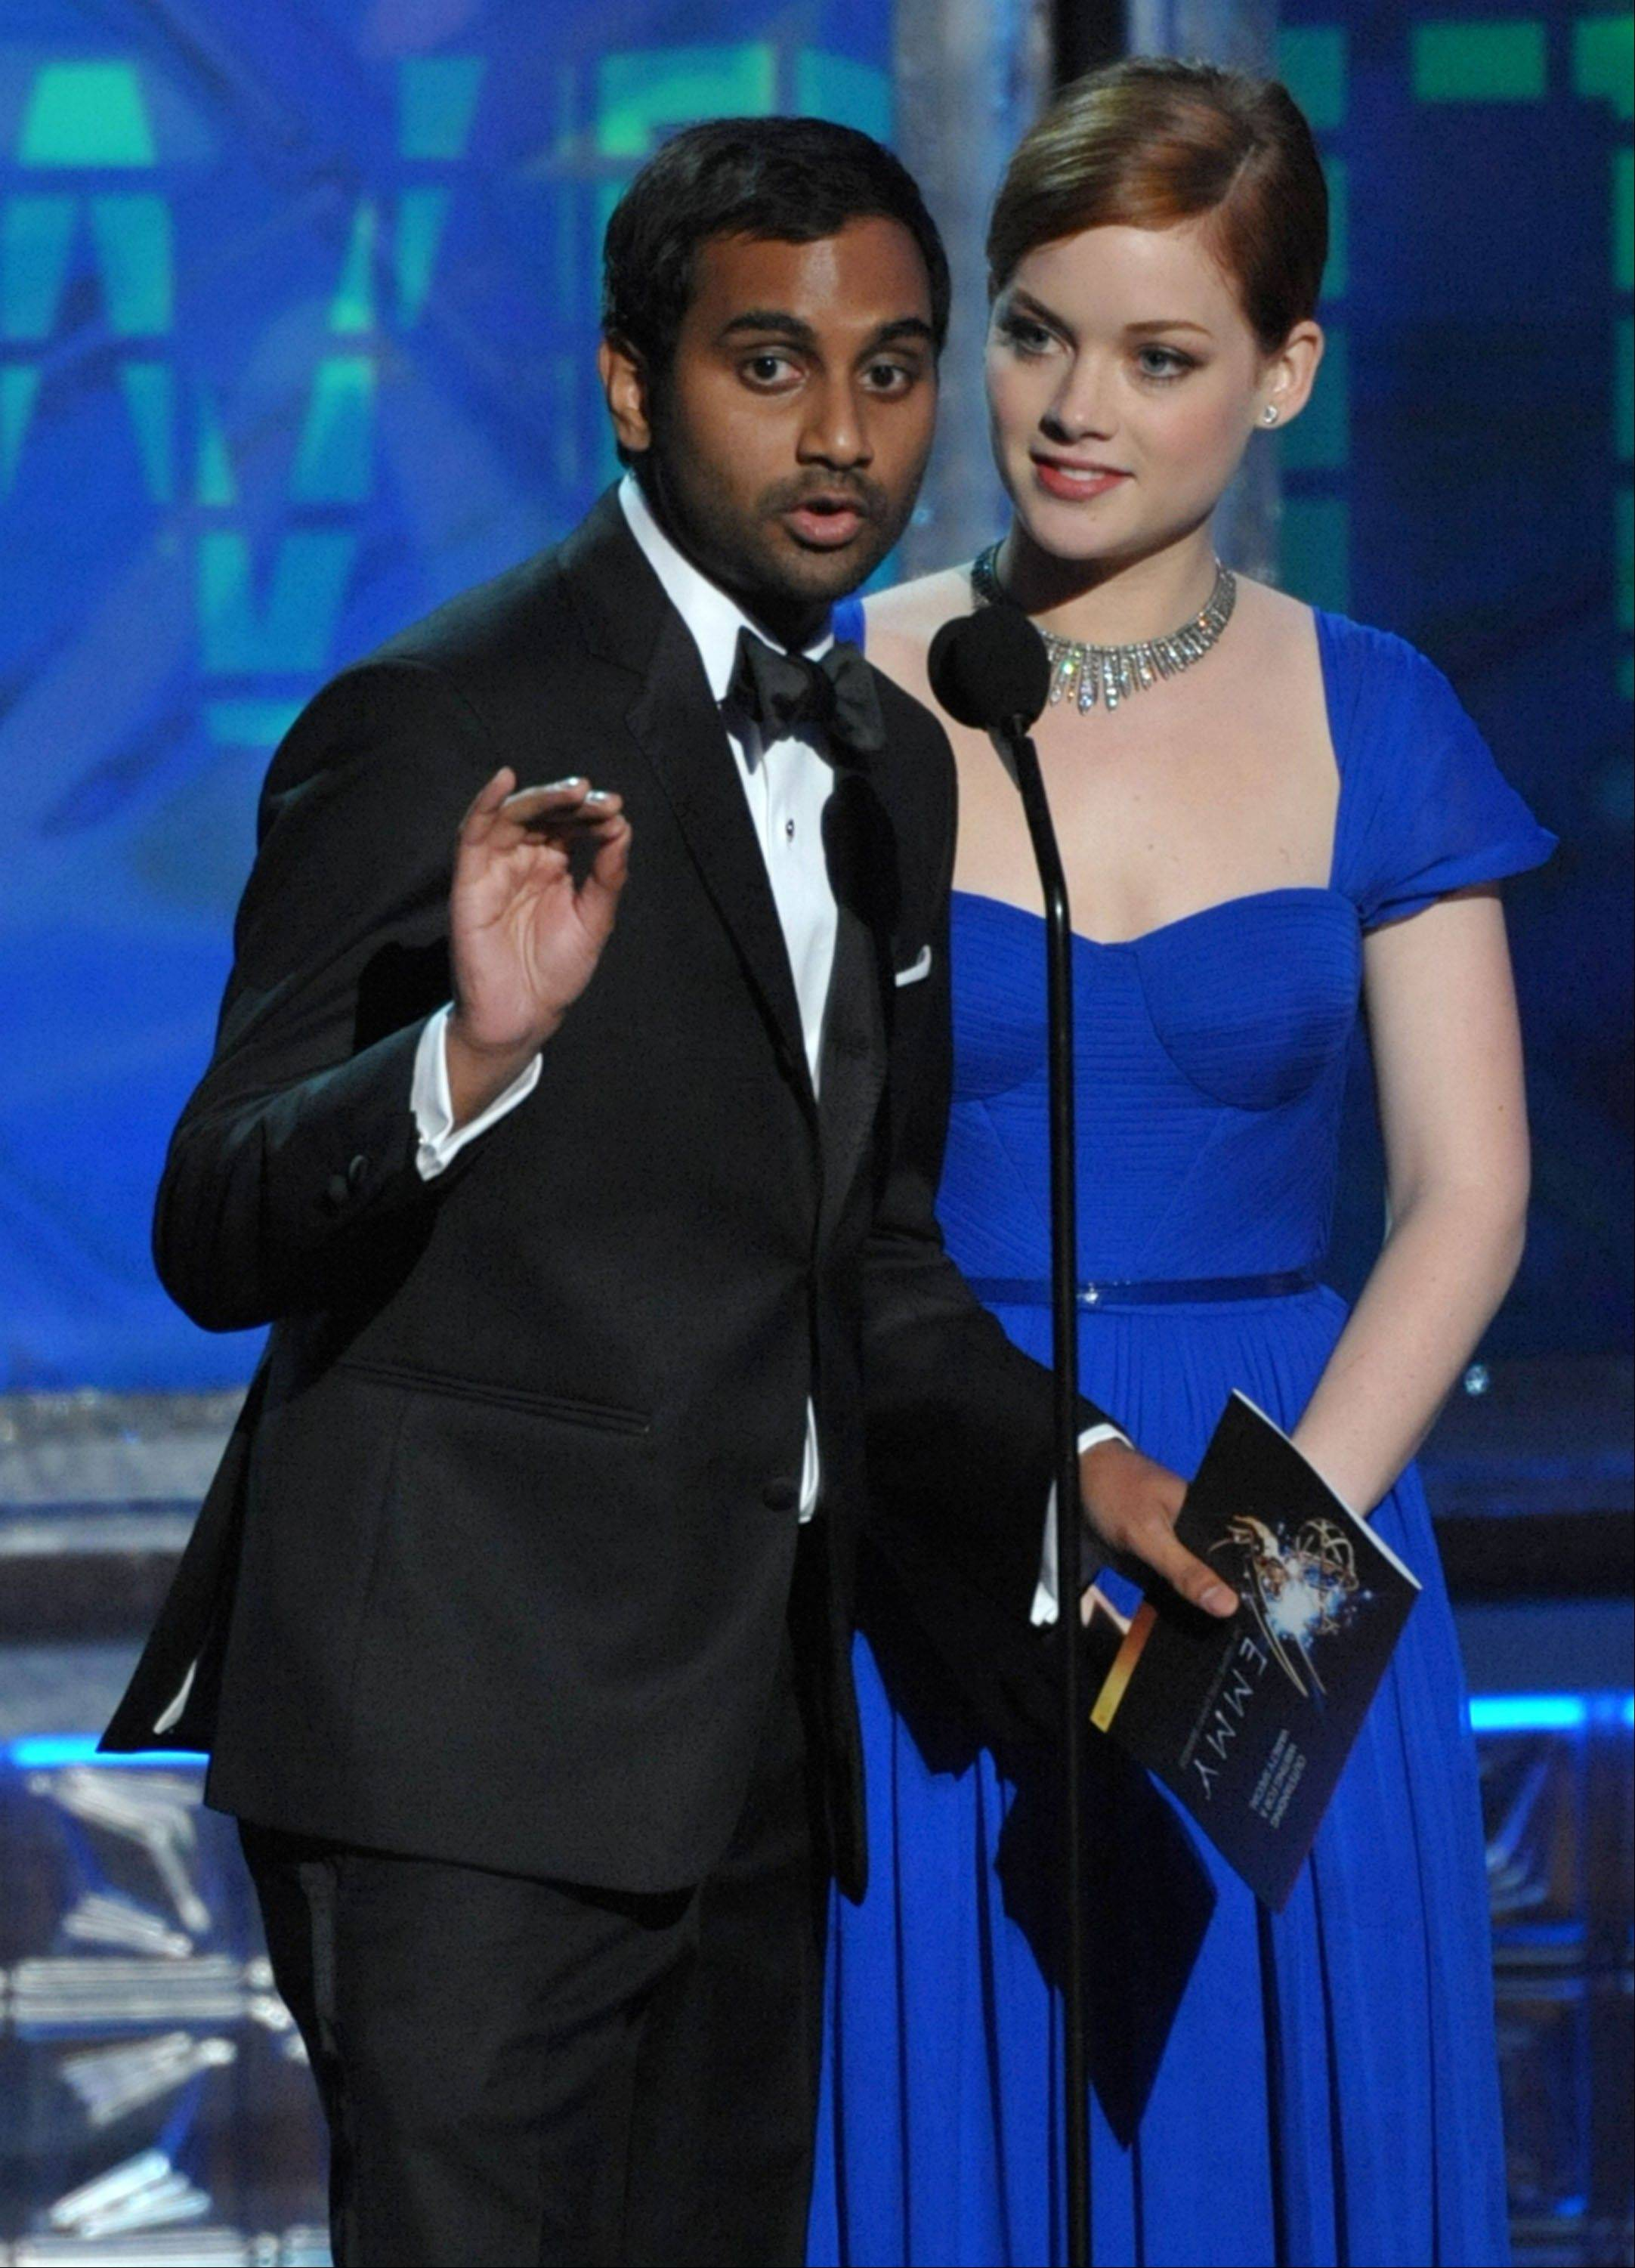 Aziz Ansari, left, and Jane Levy present an award onstage at the 64th Primetime Emmy Awards at the Nokia Theatre on Sunday, Sept. 23, 2012, in Los Angeles.